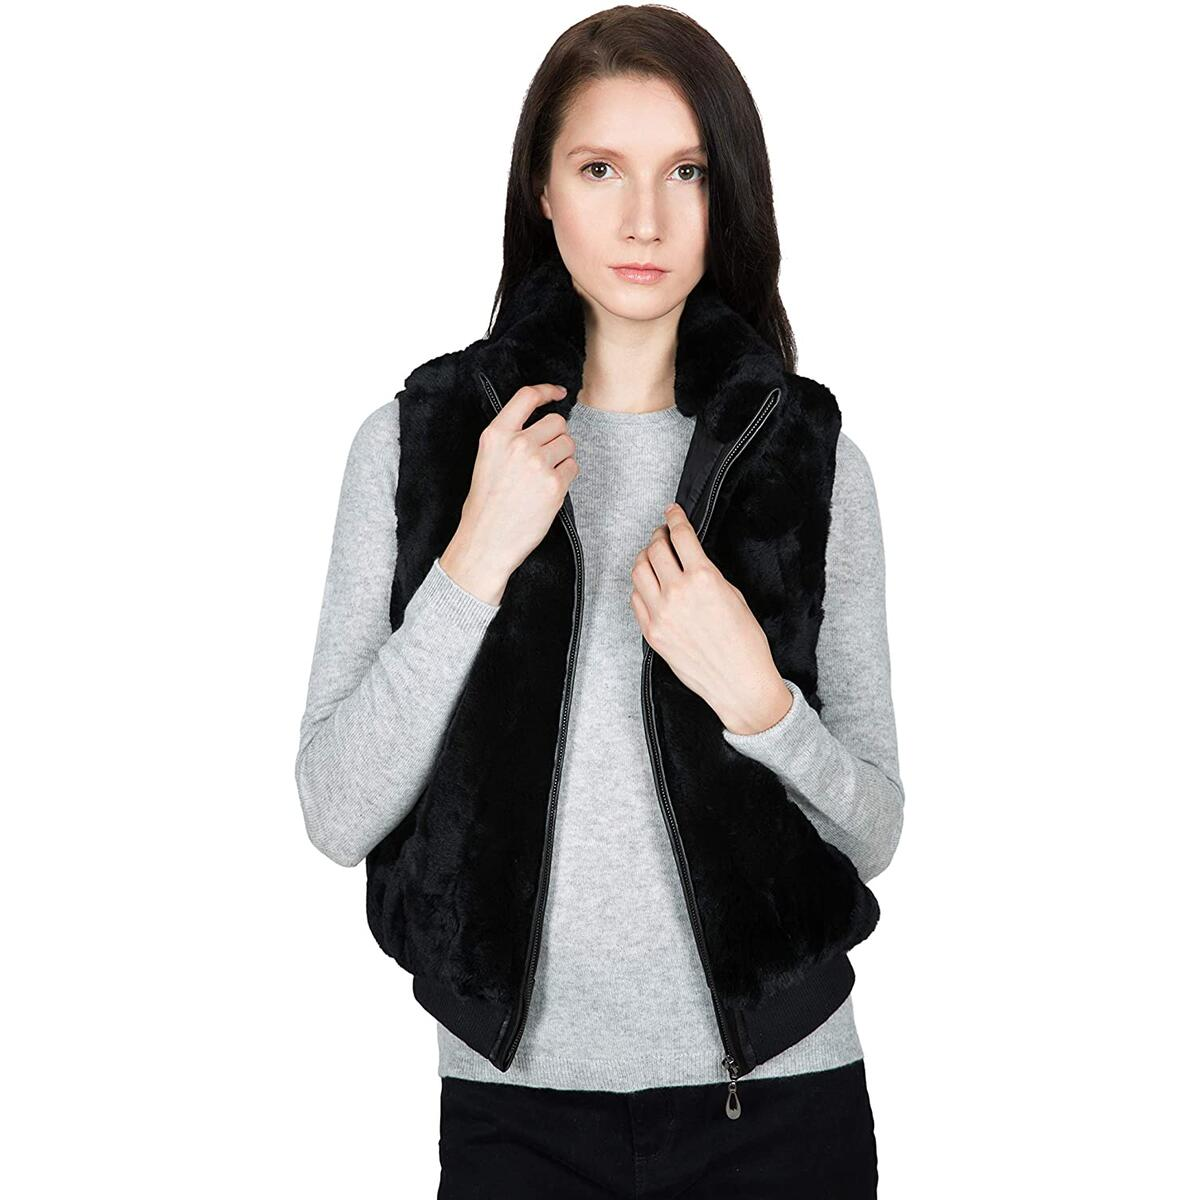 OBURLA Women's 100% Real Rex Rabbit Fur Vest - Warm Sleeveless Fur Jacket with Zipper and Genuine Leather Accent